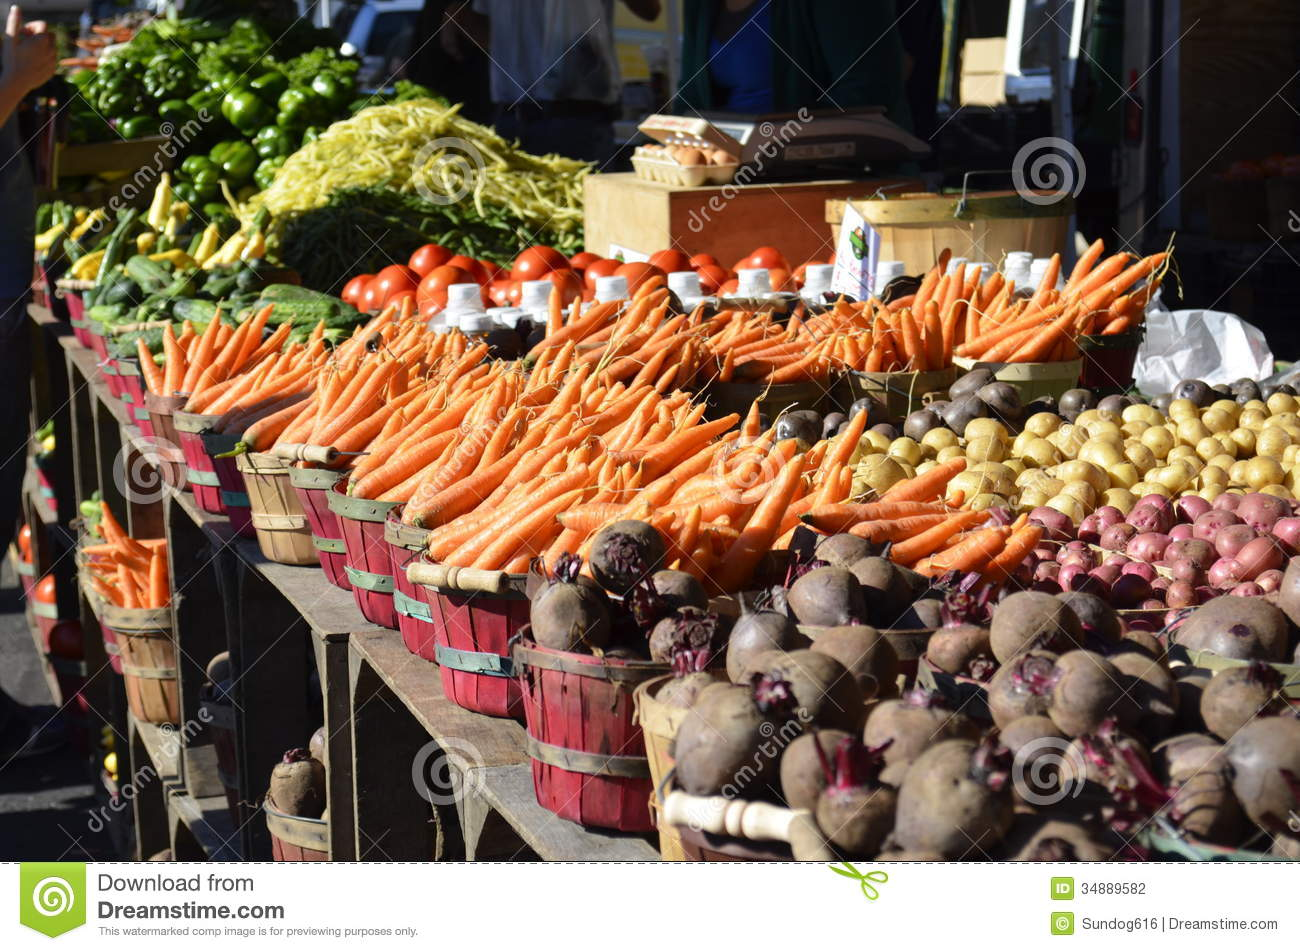 Produce For Sale Stock Photography - Image: 34889582